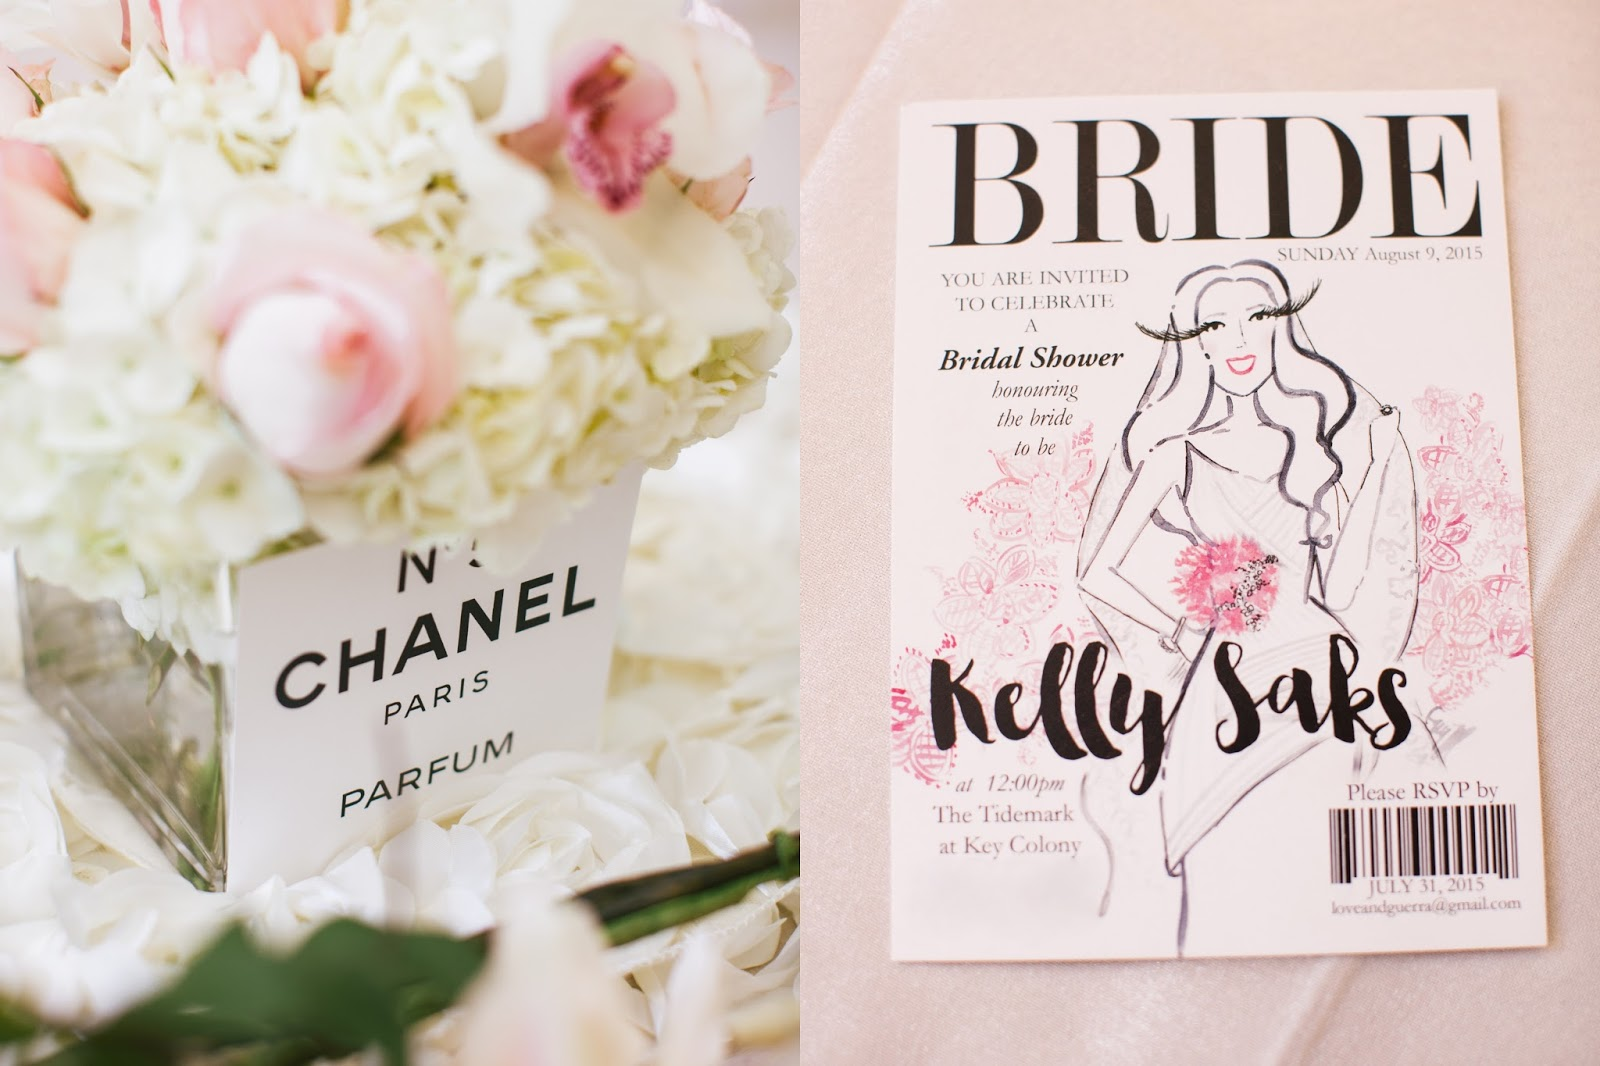 My trs chic bridal shower kelly saks bridal shower fashion magazine invitation filmwisefo